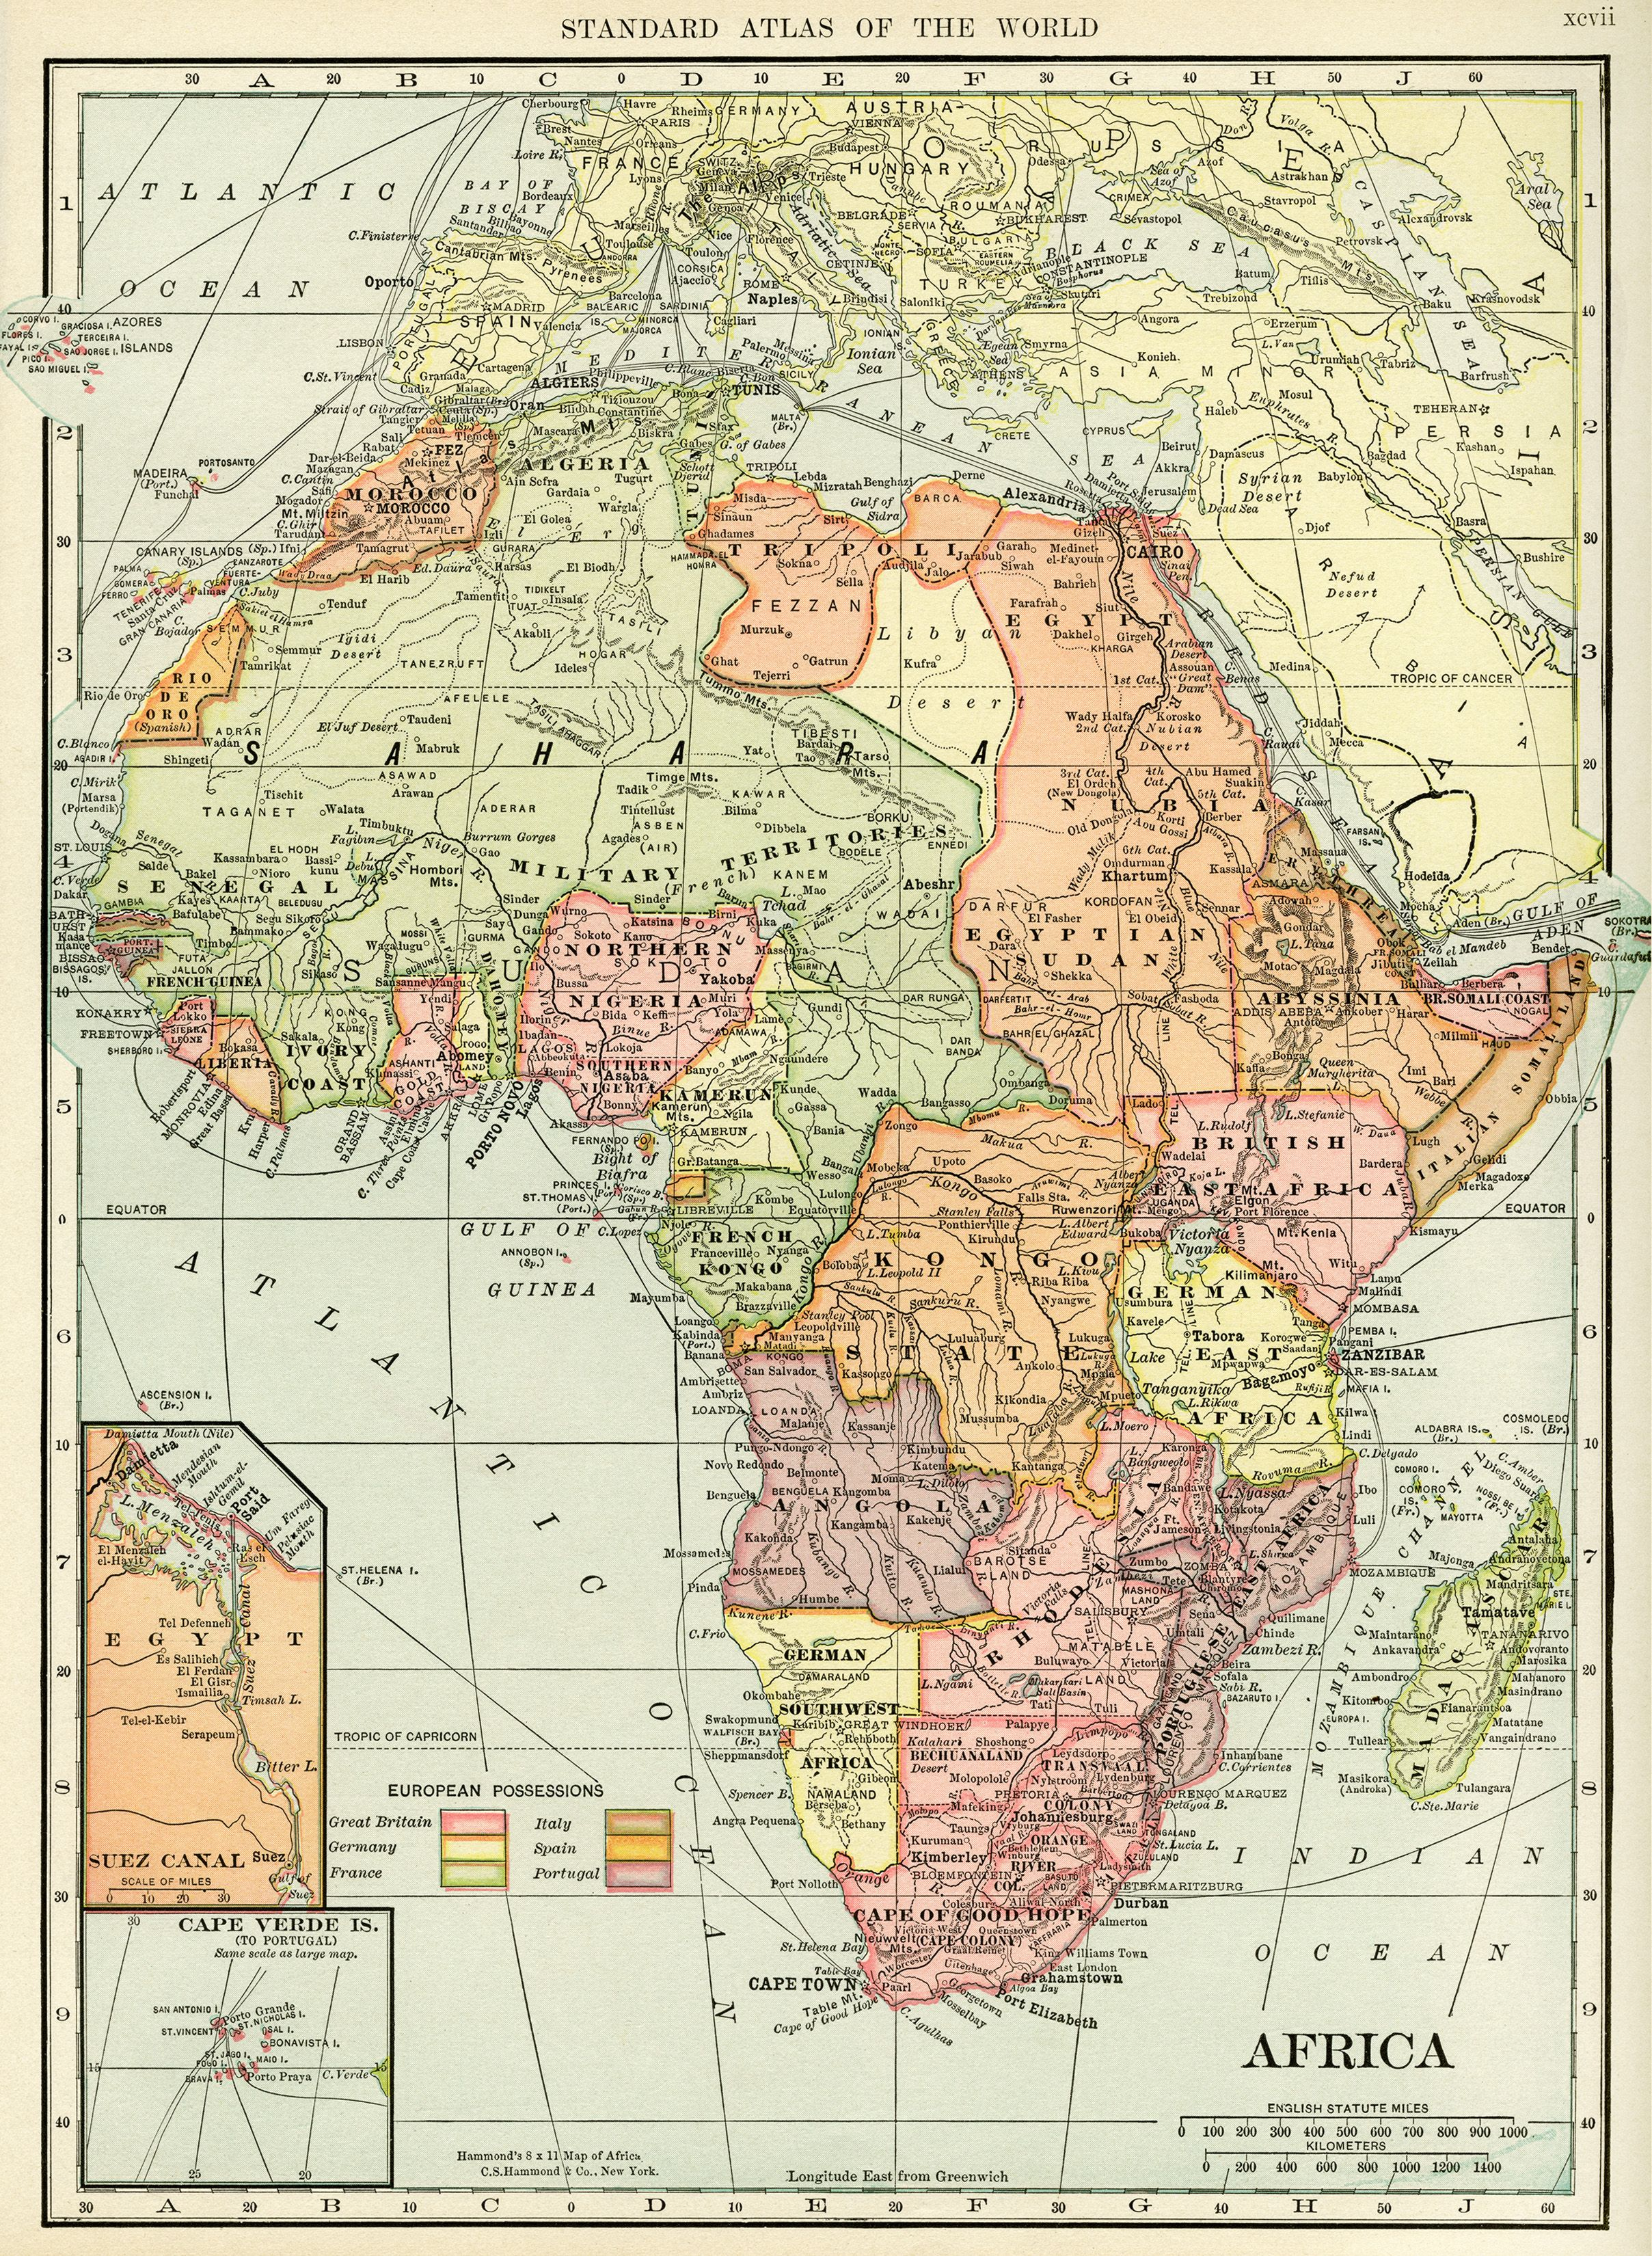 C S Hammond map of Africa, antique historical map, history geography ...